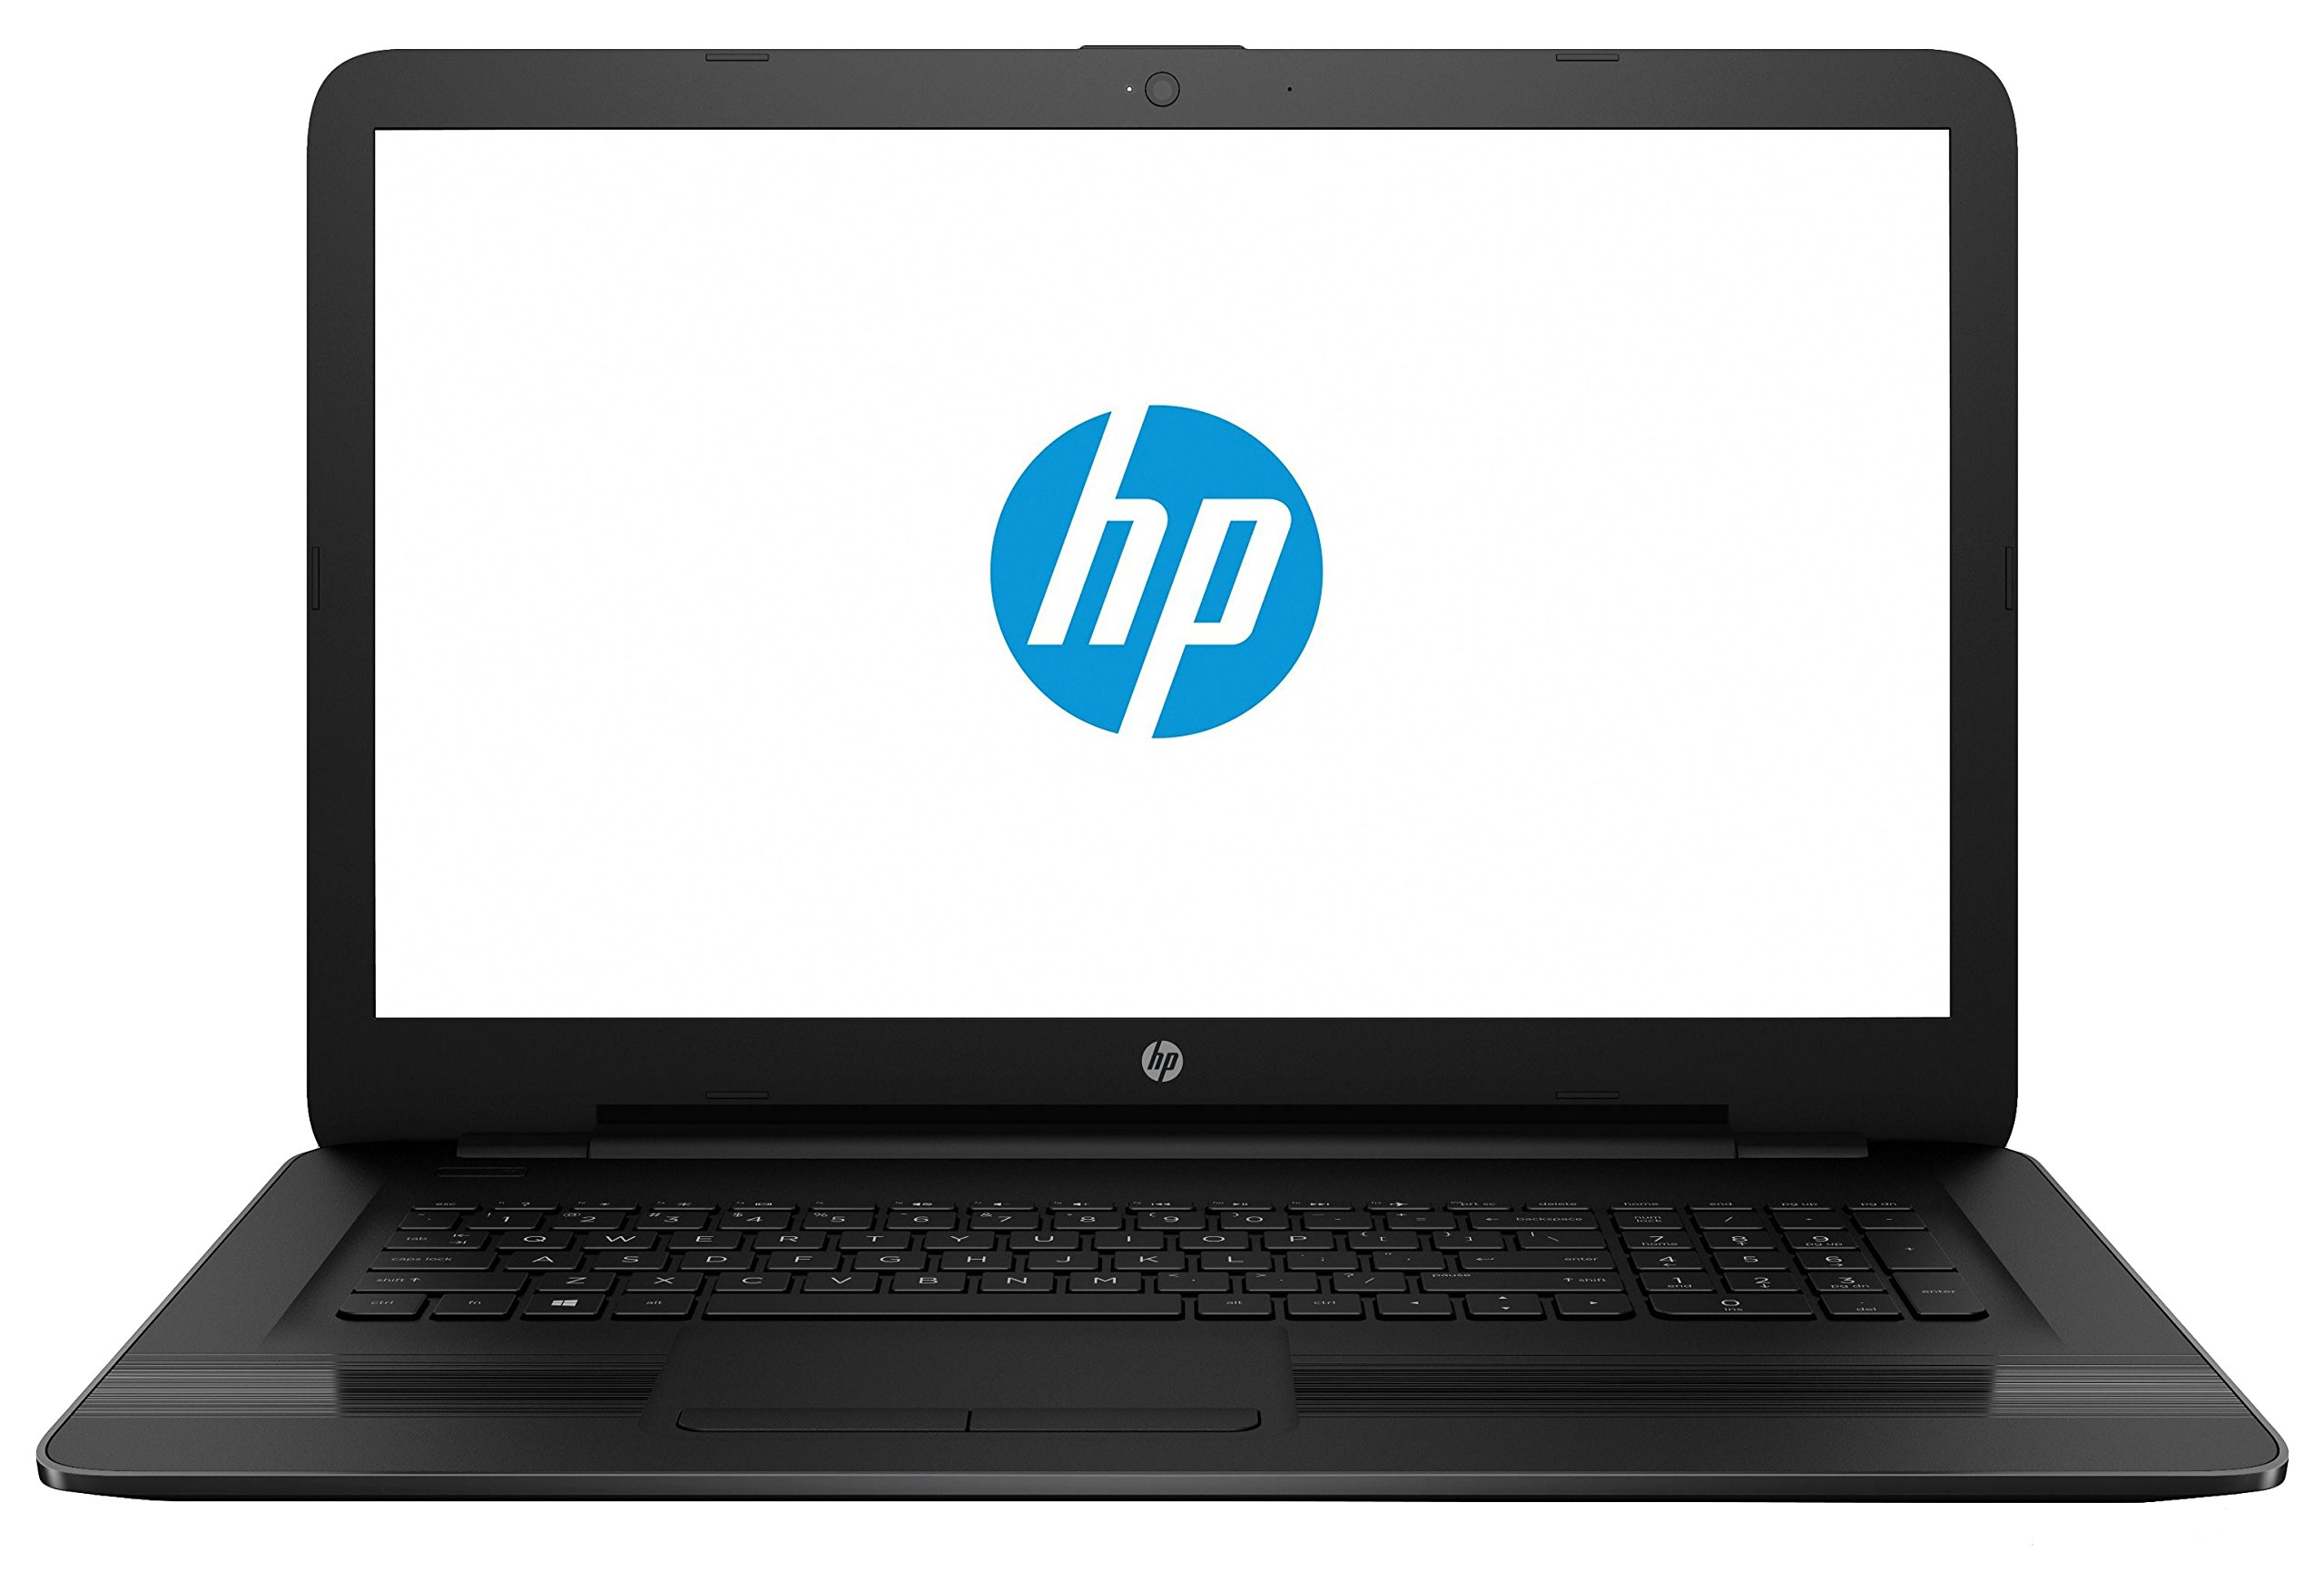 "HP - 17.3"" Laptop - Intel Core i5 - 8GB Memory - 1TB HDD 1"